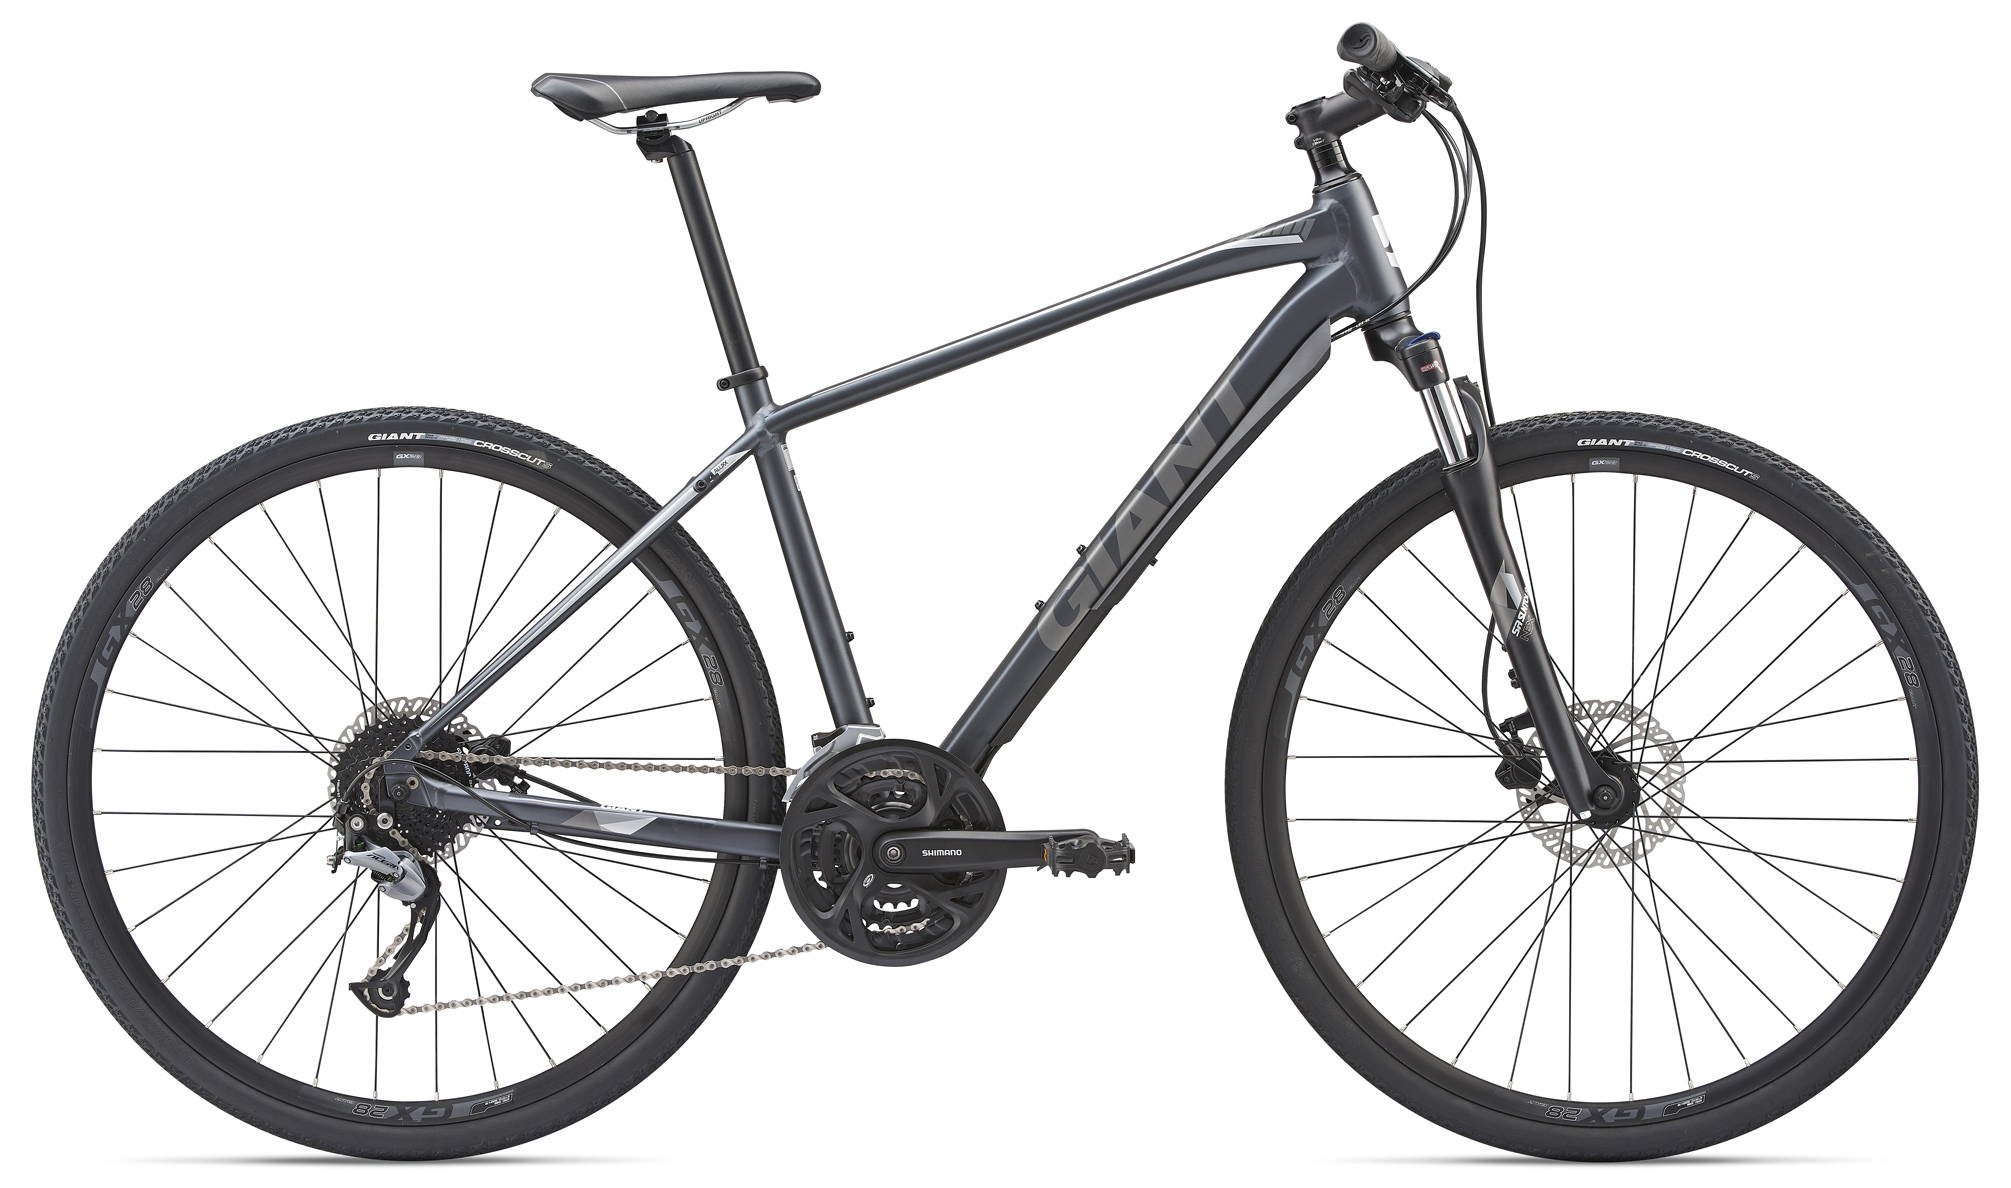 Велосипед Giant Roam 2 Disc 2019 велосипед trek skye sl disc 2014